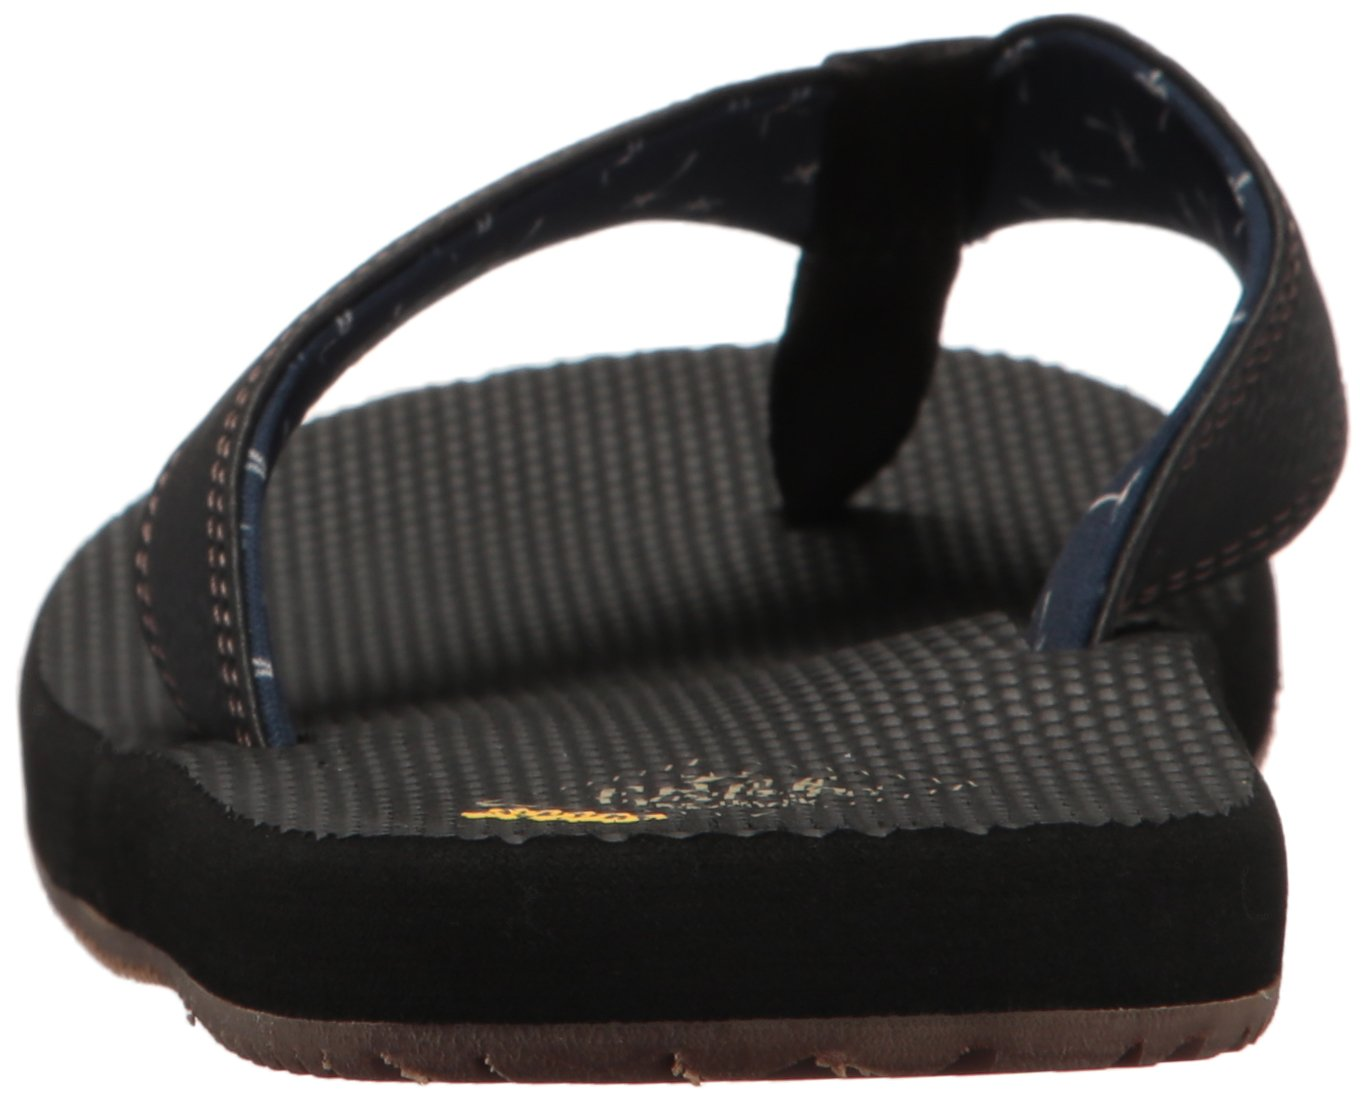 Freewaters Men's Supreem Dude Flip-Flop, Black, 11 Medium US by Freewaters (Image #2)